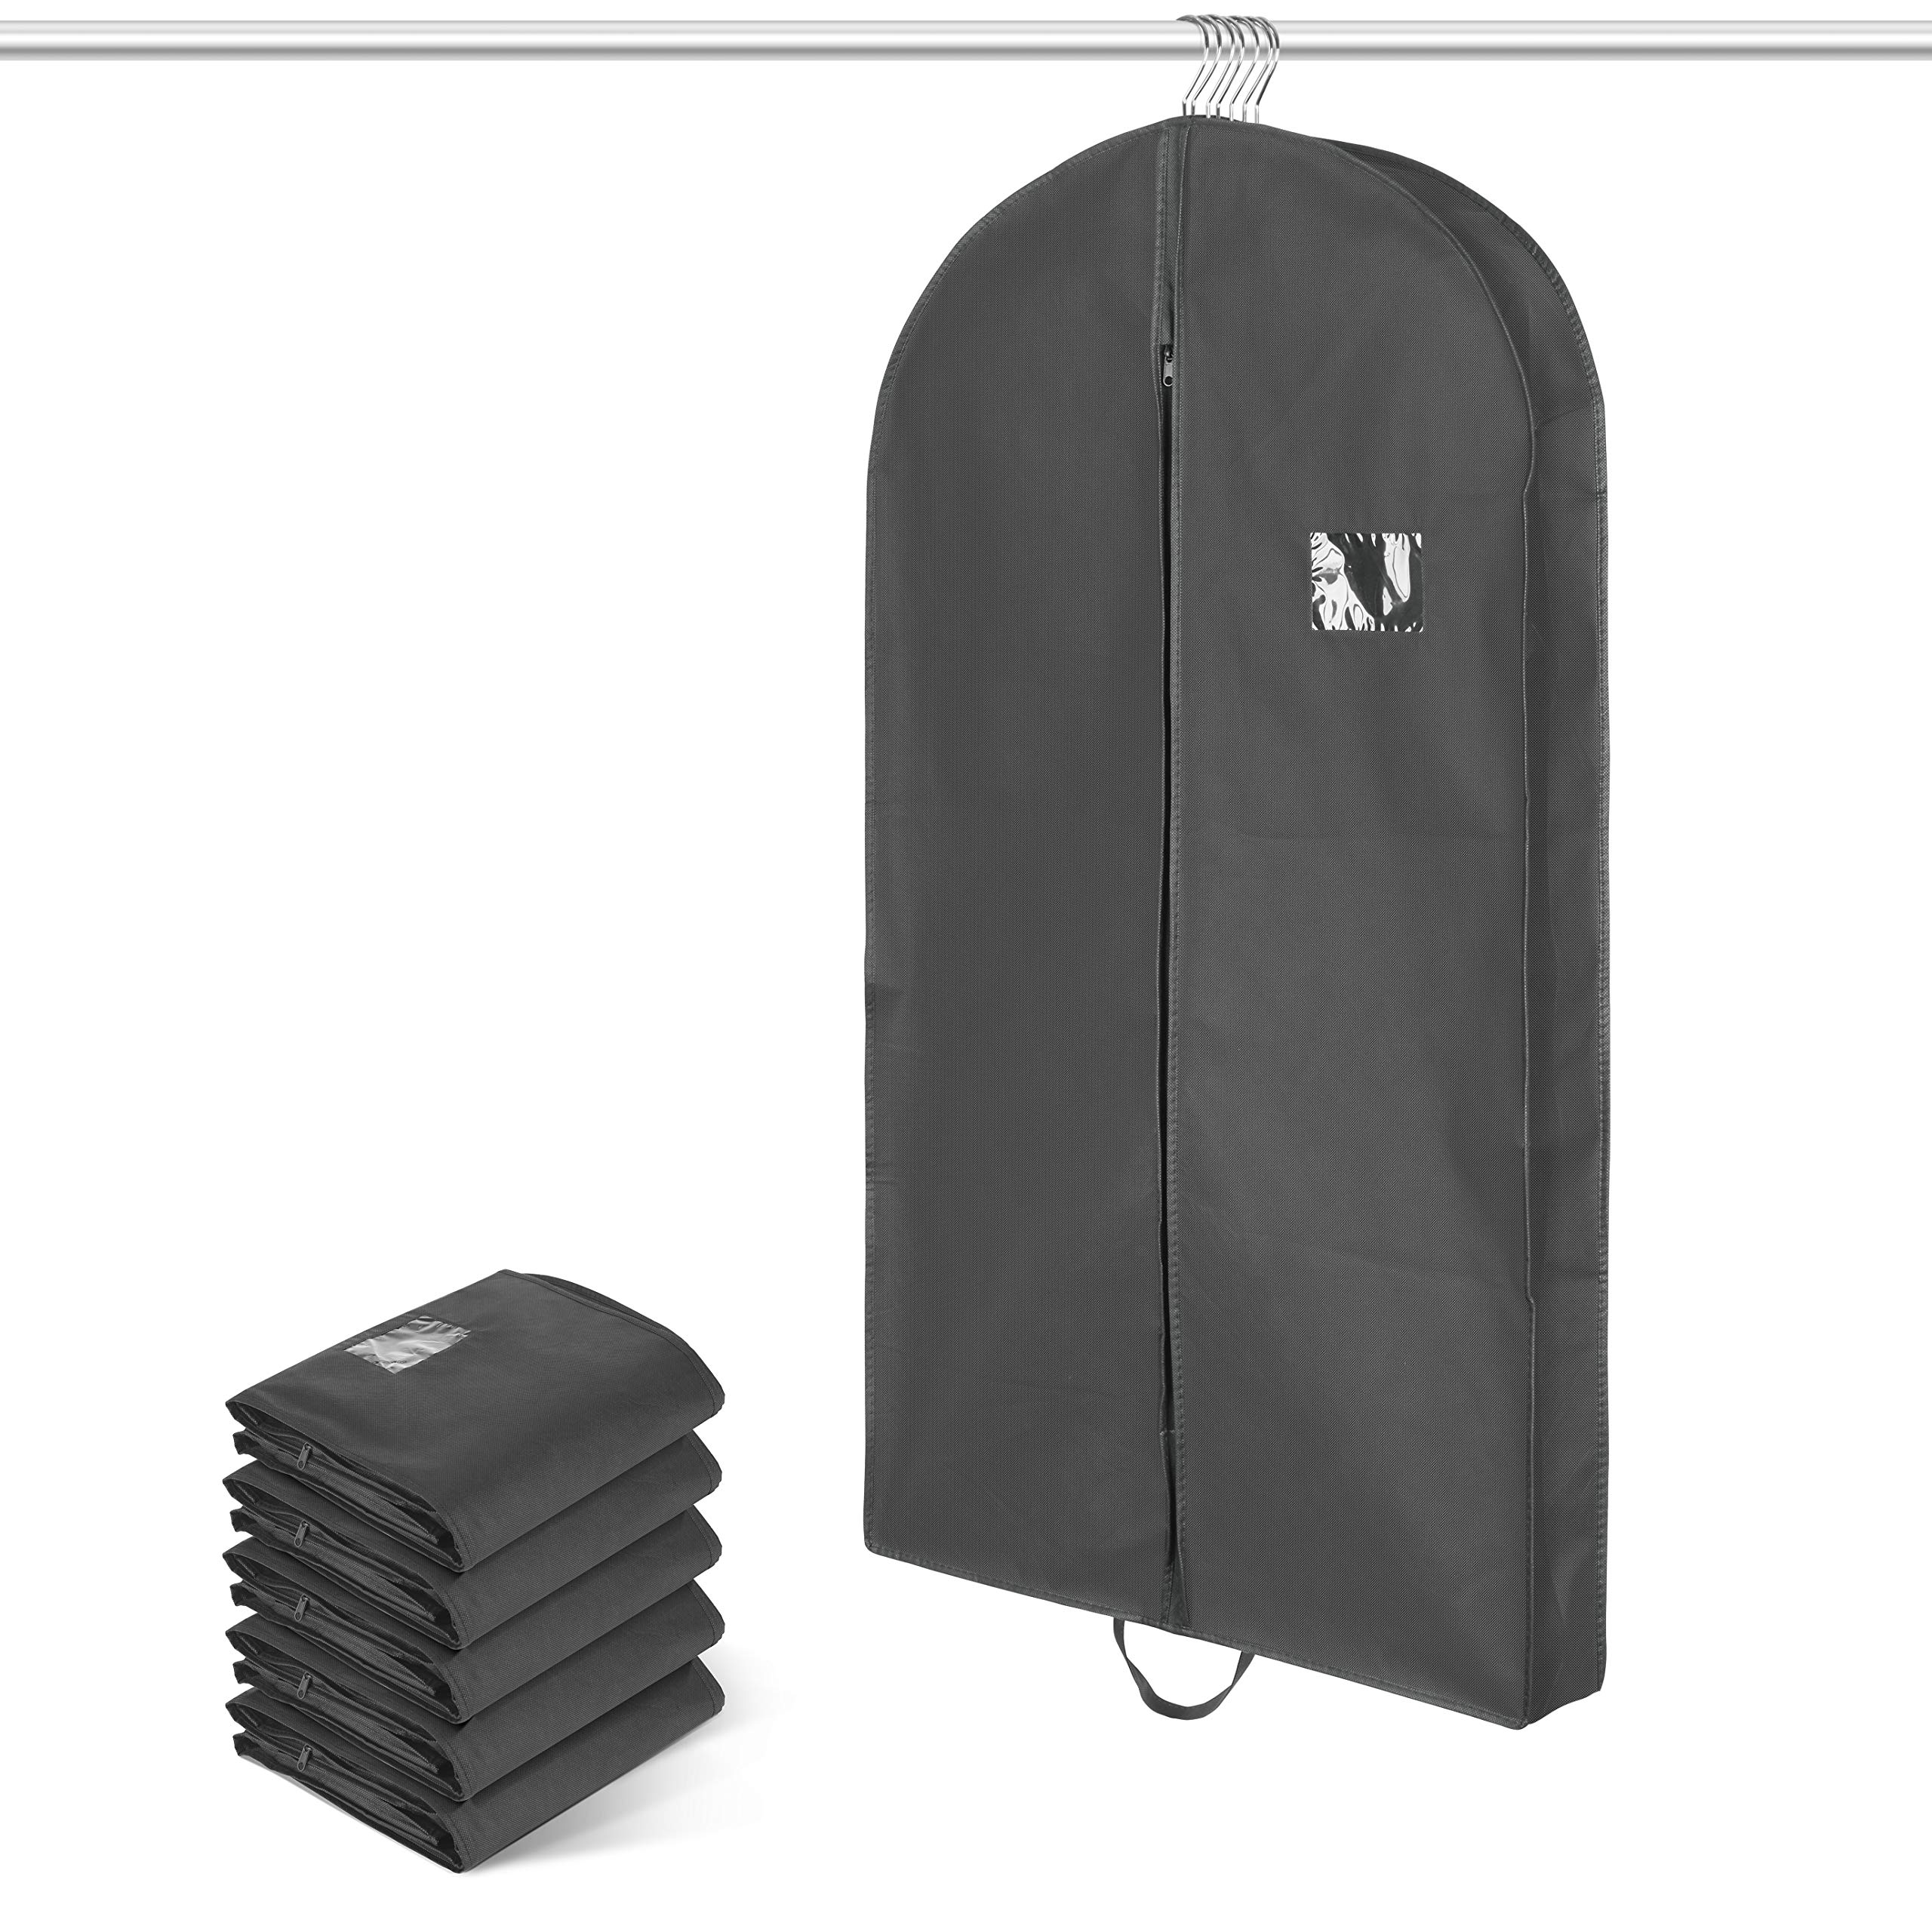 Titan Mall 42-Inch Garment Bag Foldover Breathable Suit Cover with Handles and 4'' Gusset - Black, Set of 5